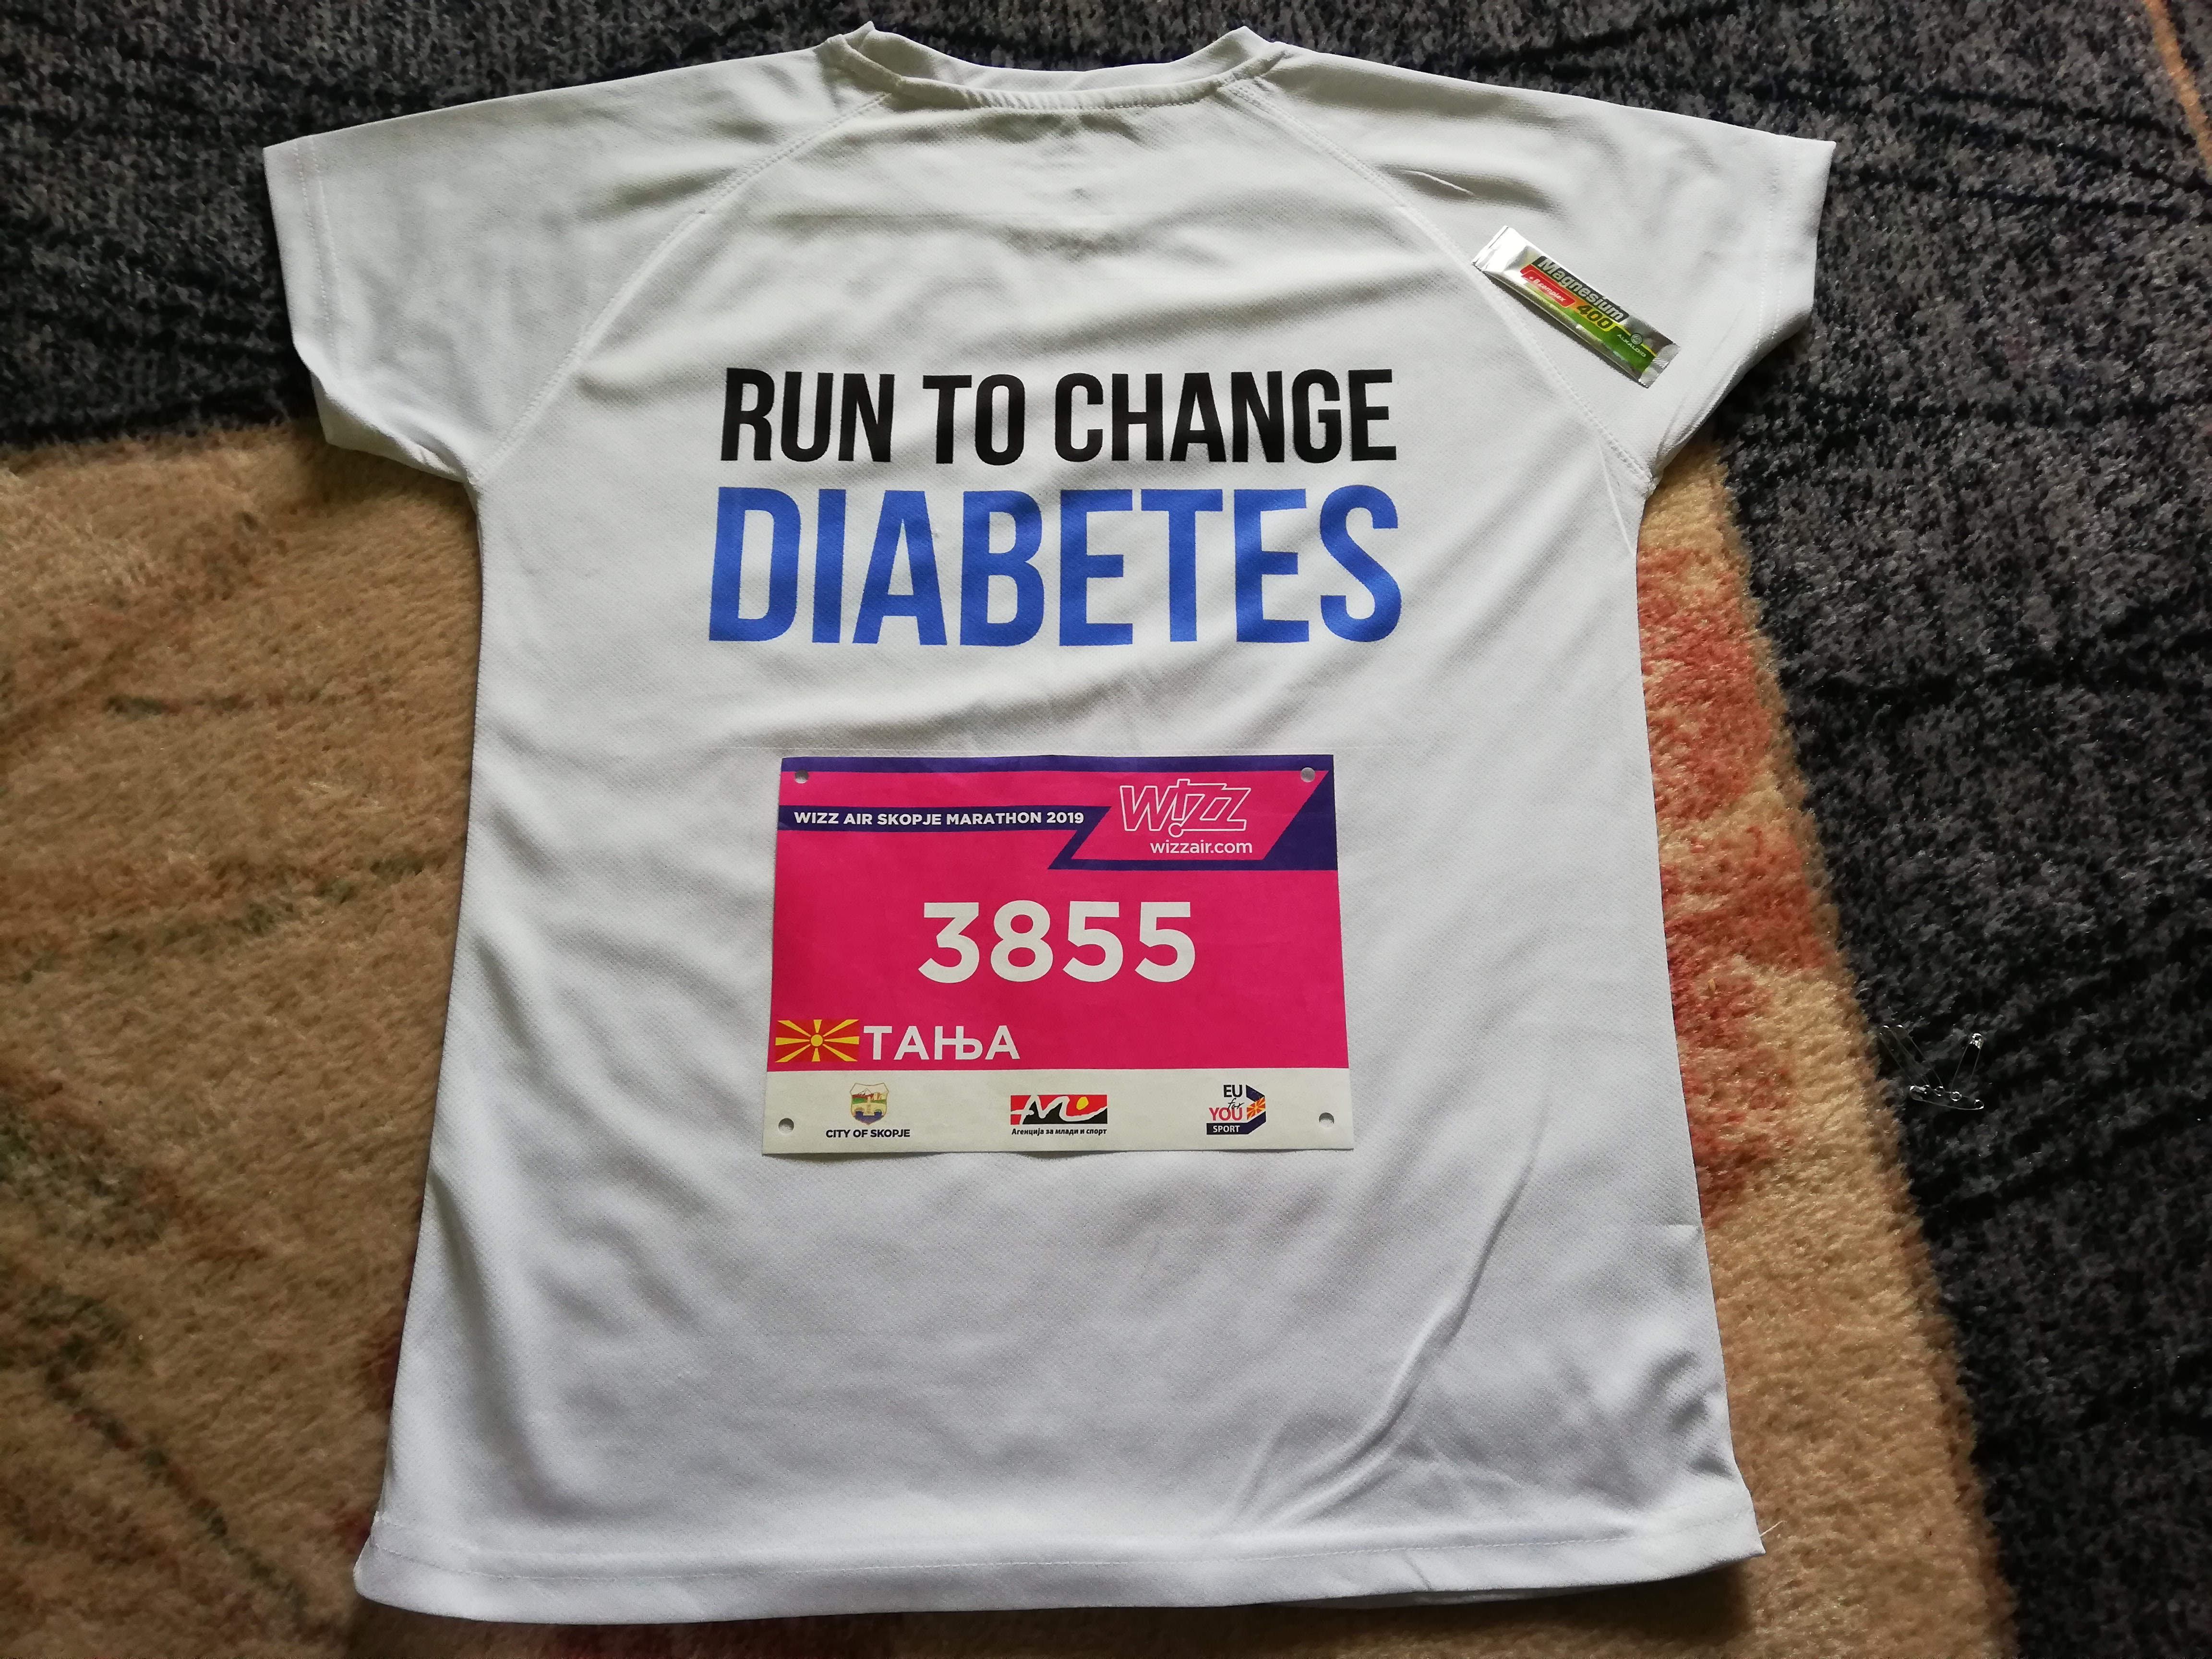 My T-Shirt for How did I prepare for Skopje Wizz Air Marathon 2019